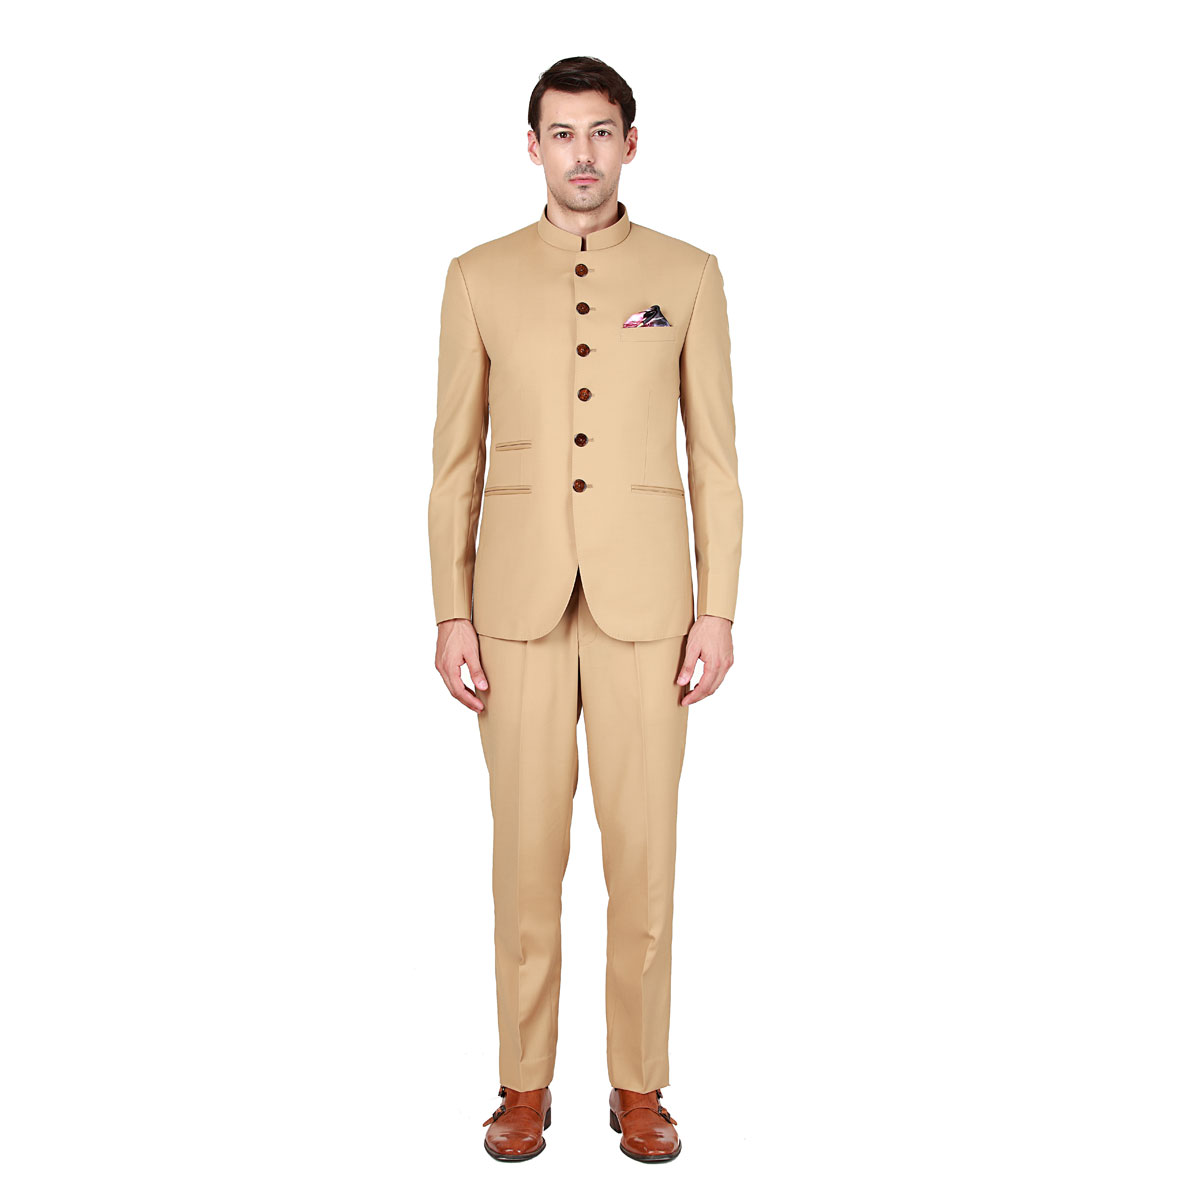 Besoke Suits Stores Online Best Fashion For Men